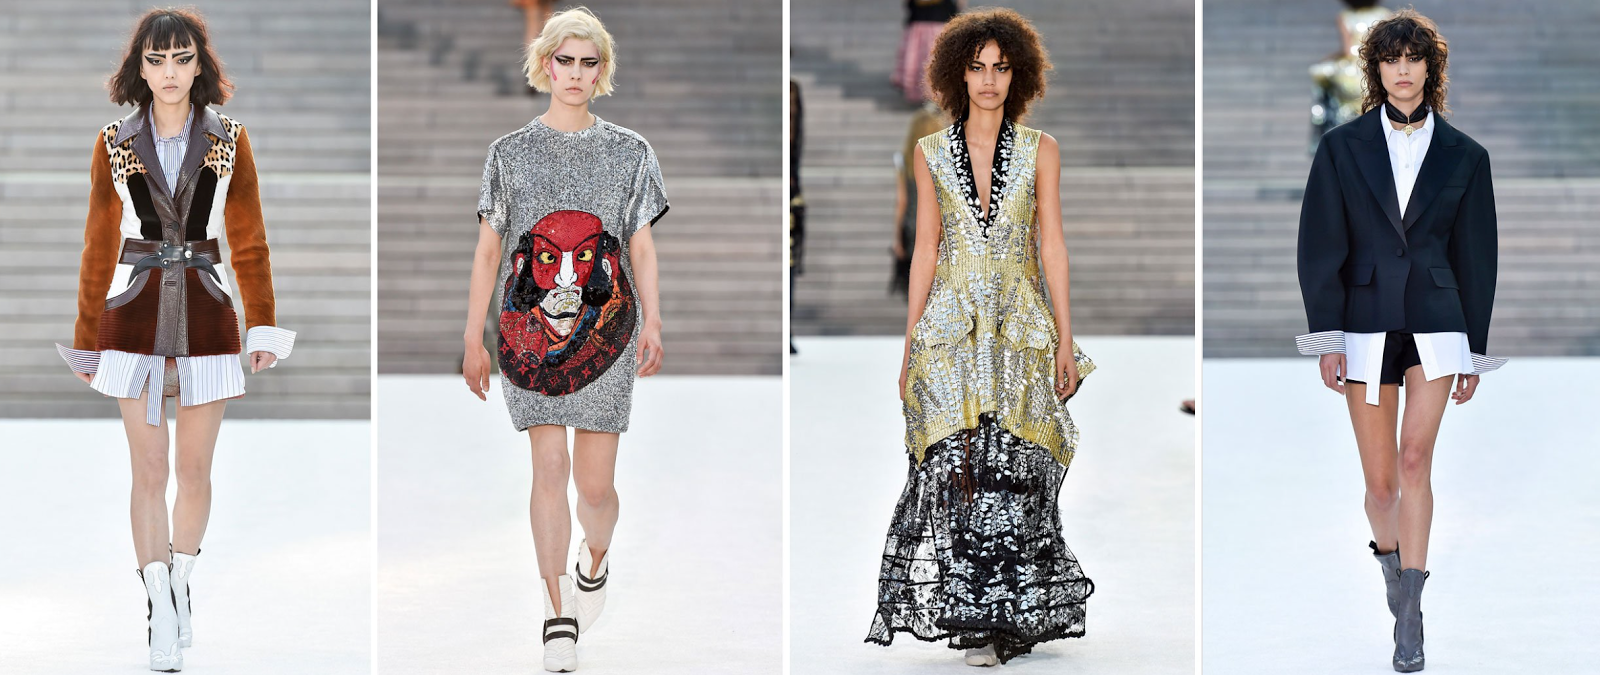 Louis Vuitton Cruise 2018 Runway and Bags Report